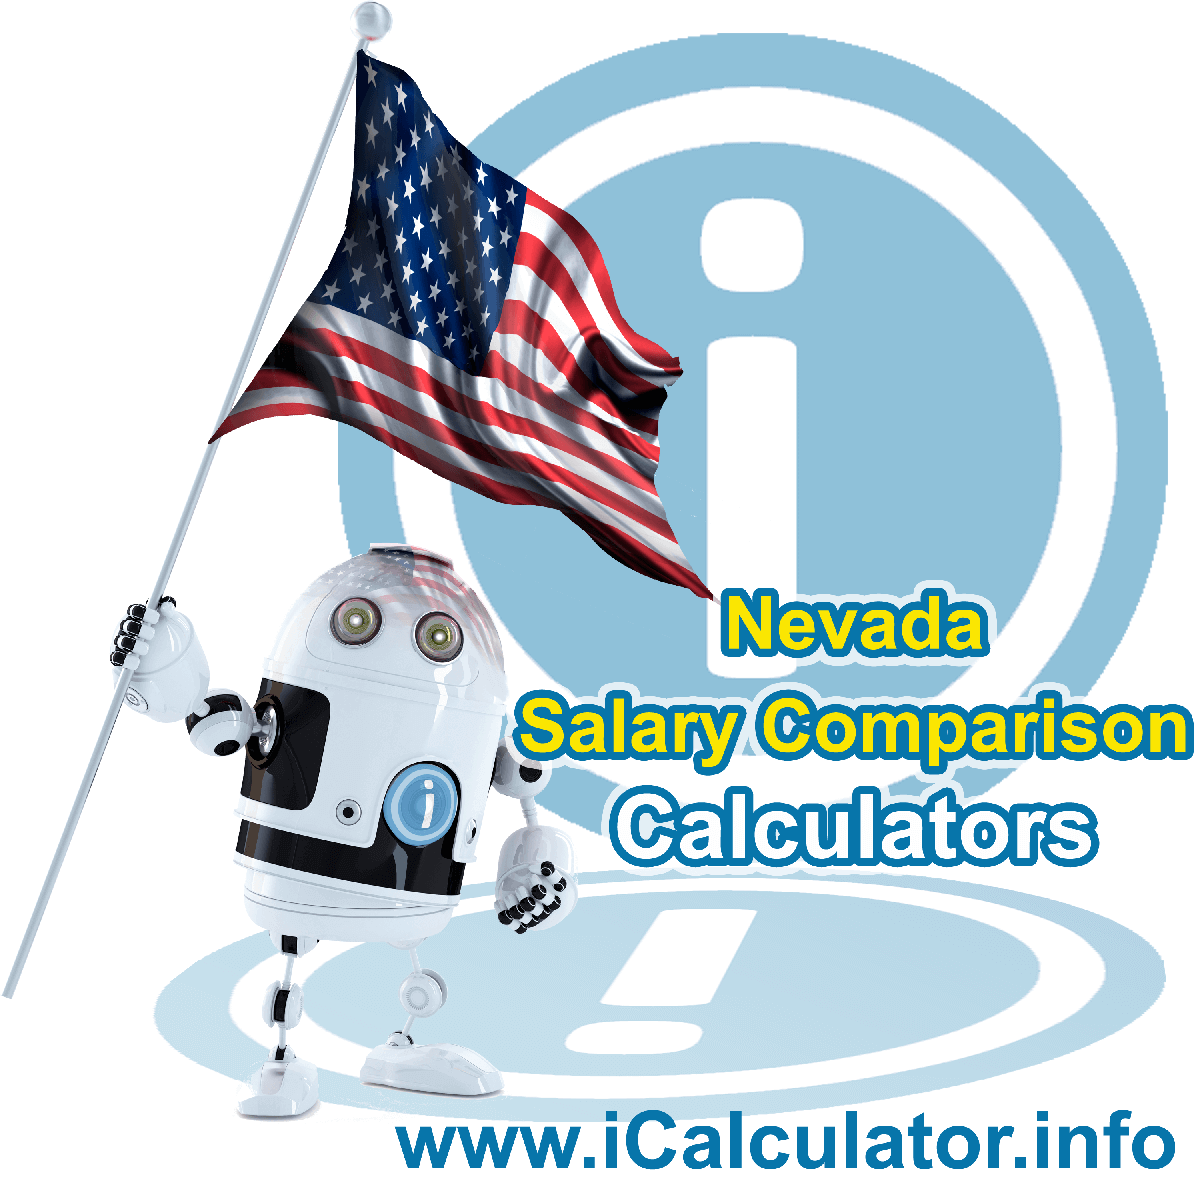 Nevada Salary Comparison Calculator 2019   iCalculator   The Nevada Salary Comparison Calculator allows you to quickly calculate and compare upto 6 salaries in Nevada or between other states for the 2019 tax year and historical tax years. Its an excellent tool for jobseekers, pay raise comparison and comparison of salaries between different US States